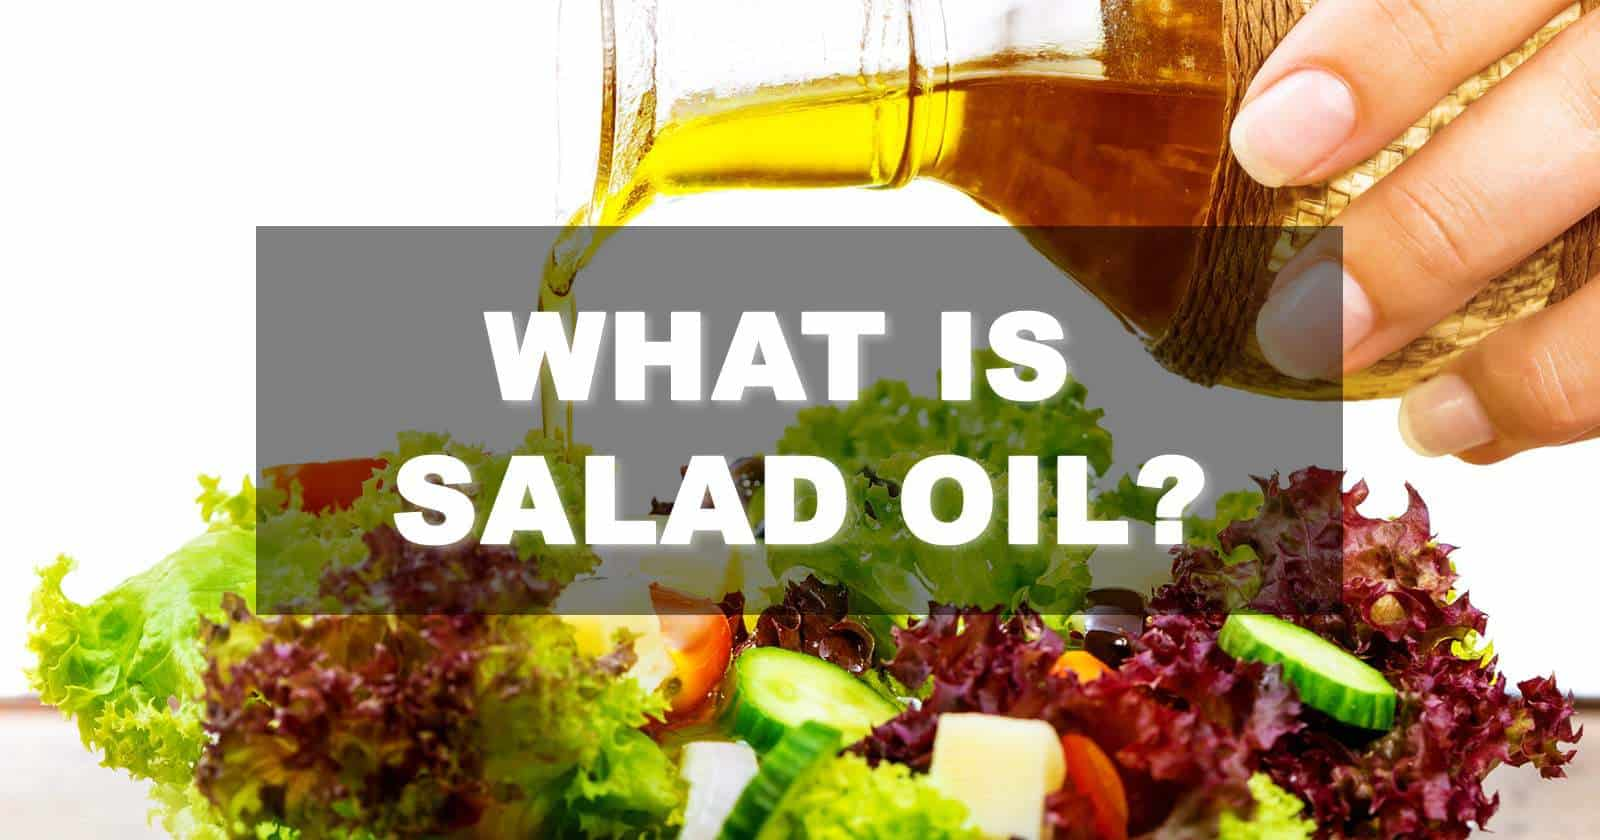 What is salad oil